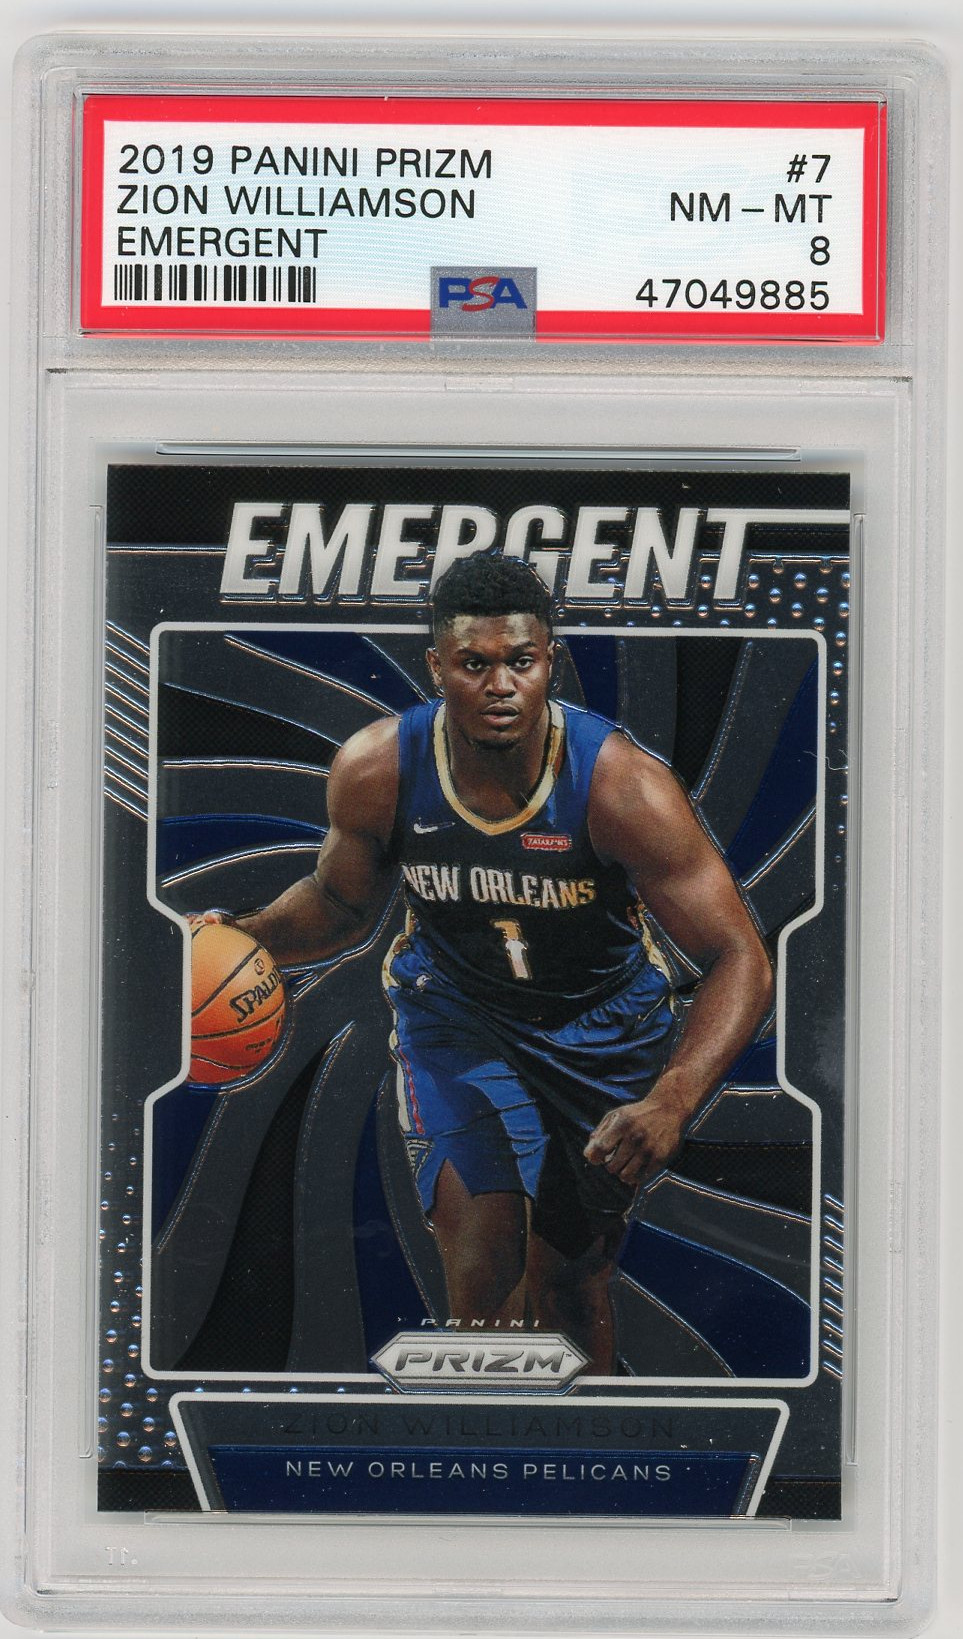 Zion Williamson New Orleans Pelicans 2019 Panini Prizm Emergent Basketball Rookie Card RC #7 Graded PSA 8 Zion Williamson New Orleans Pelicans 2019 Panini Prizm Emergent Basketball Rookie Card RC #7 Graded PSA 8